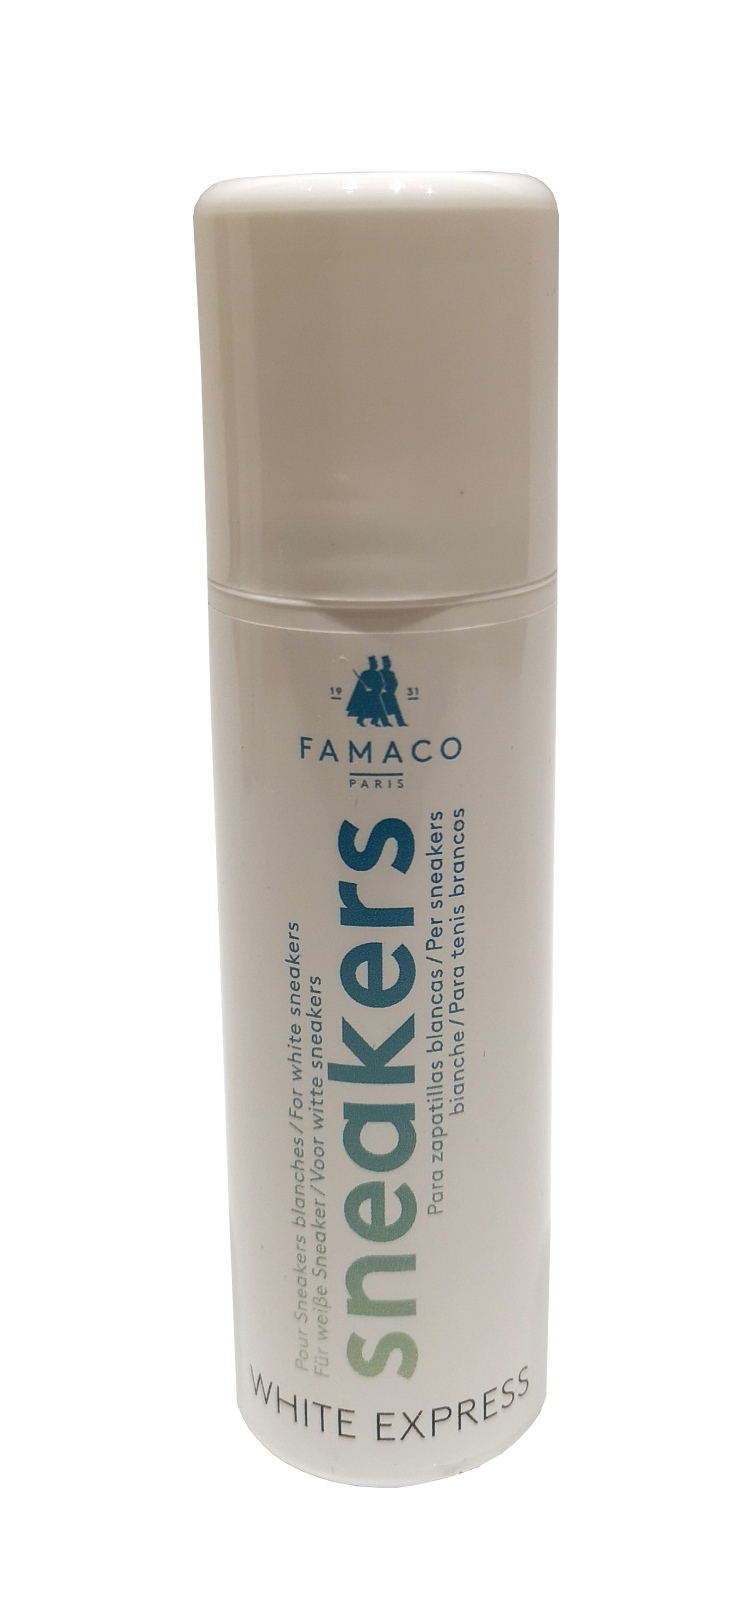 Famaco Sneakers White Express 75 ml Flasche